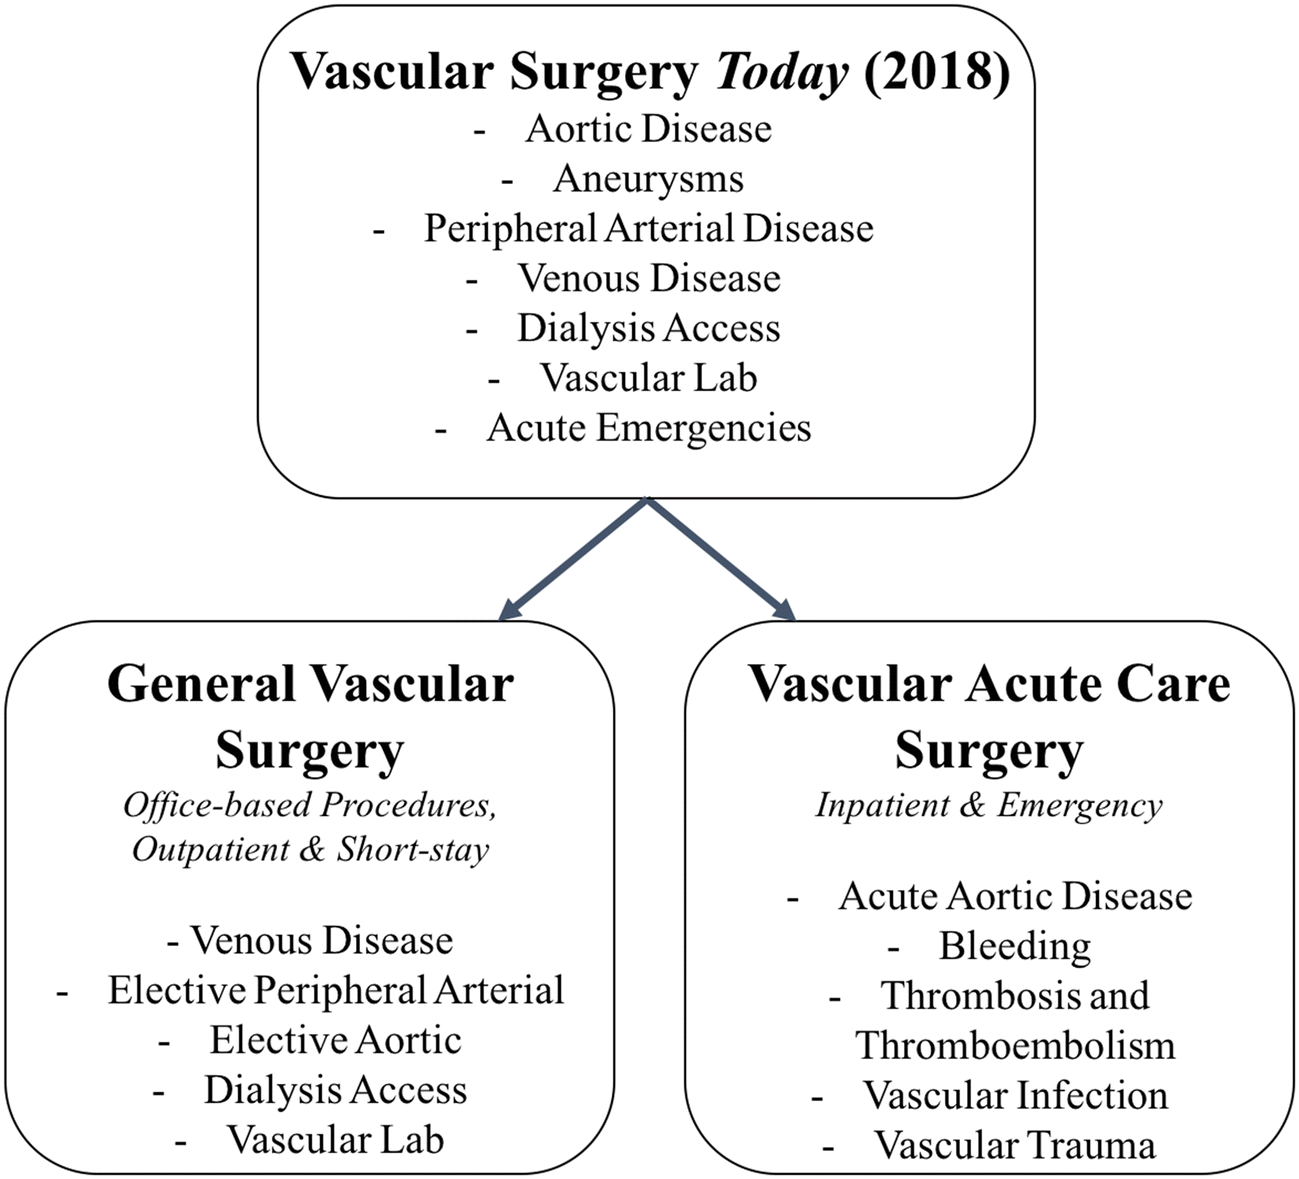 Vascular Acute Care Surgery (VACS) Services: A New Model for